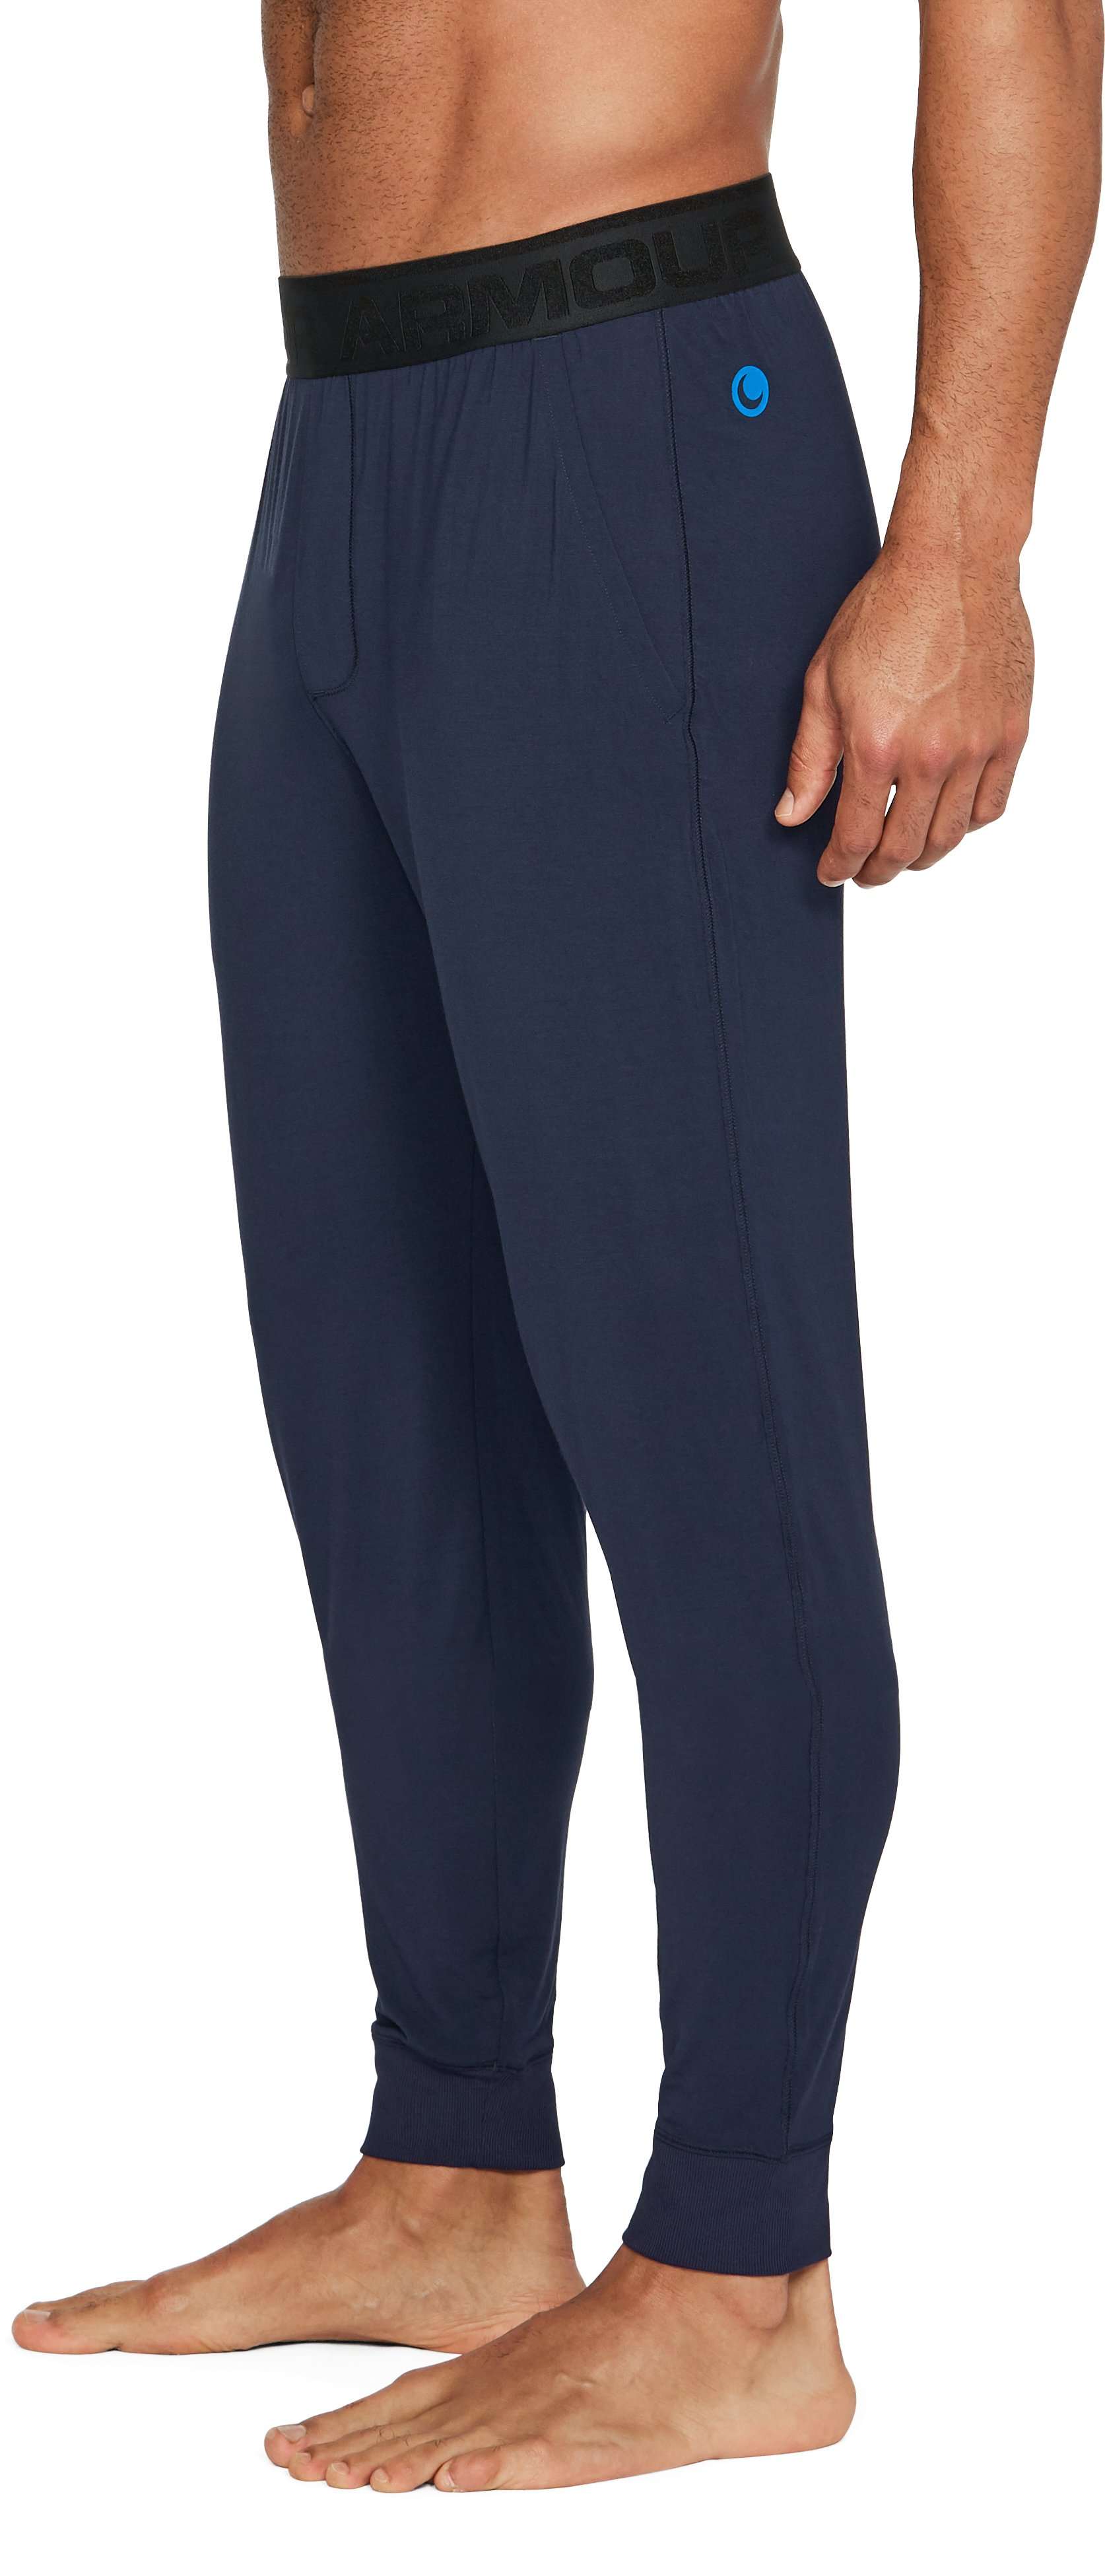 Men's Athlete Recovery Ultra Comfort Sleepwear Pants, Midnight Navy,